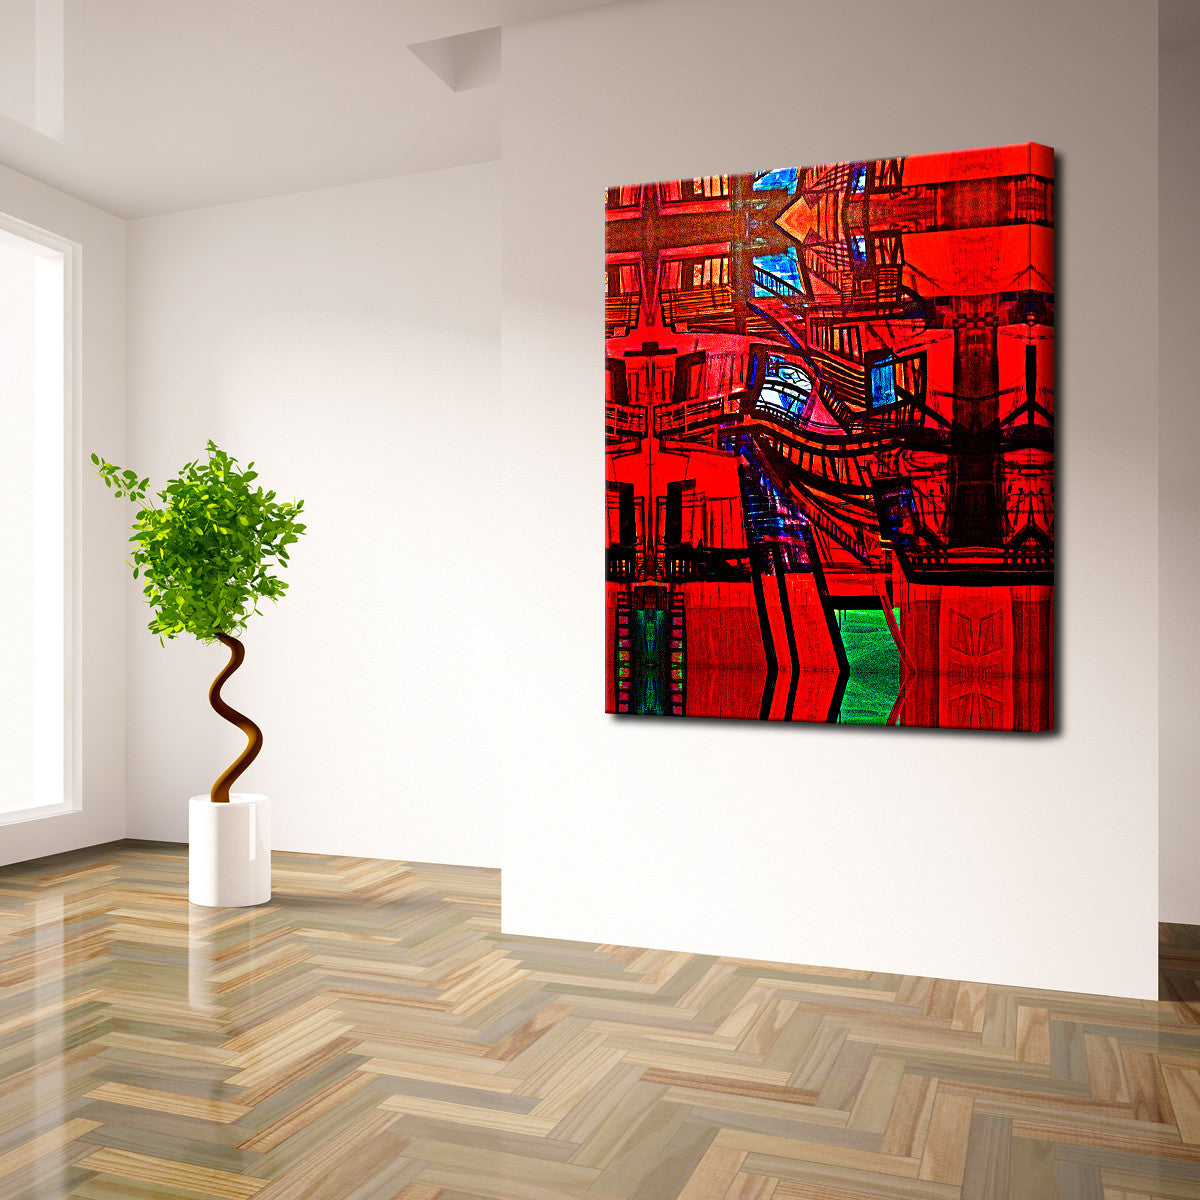 Bruce Bain 'Abstract Escape' Canvas Wall Art